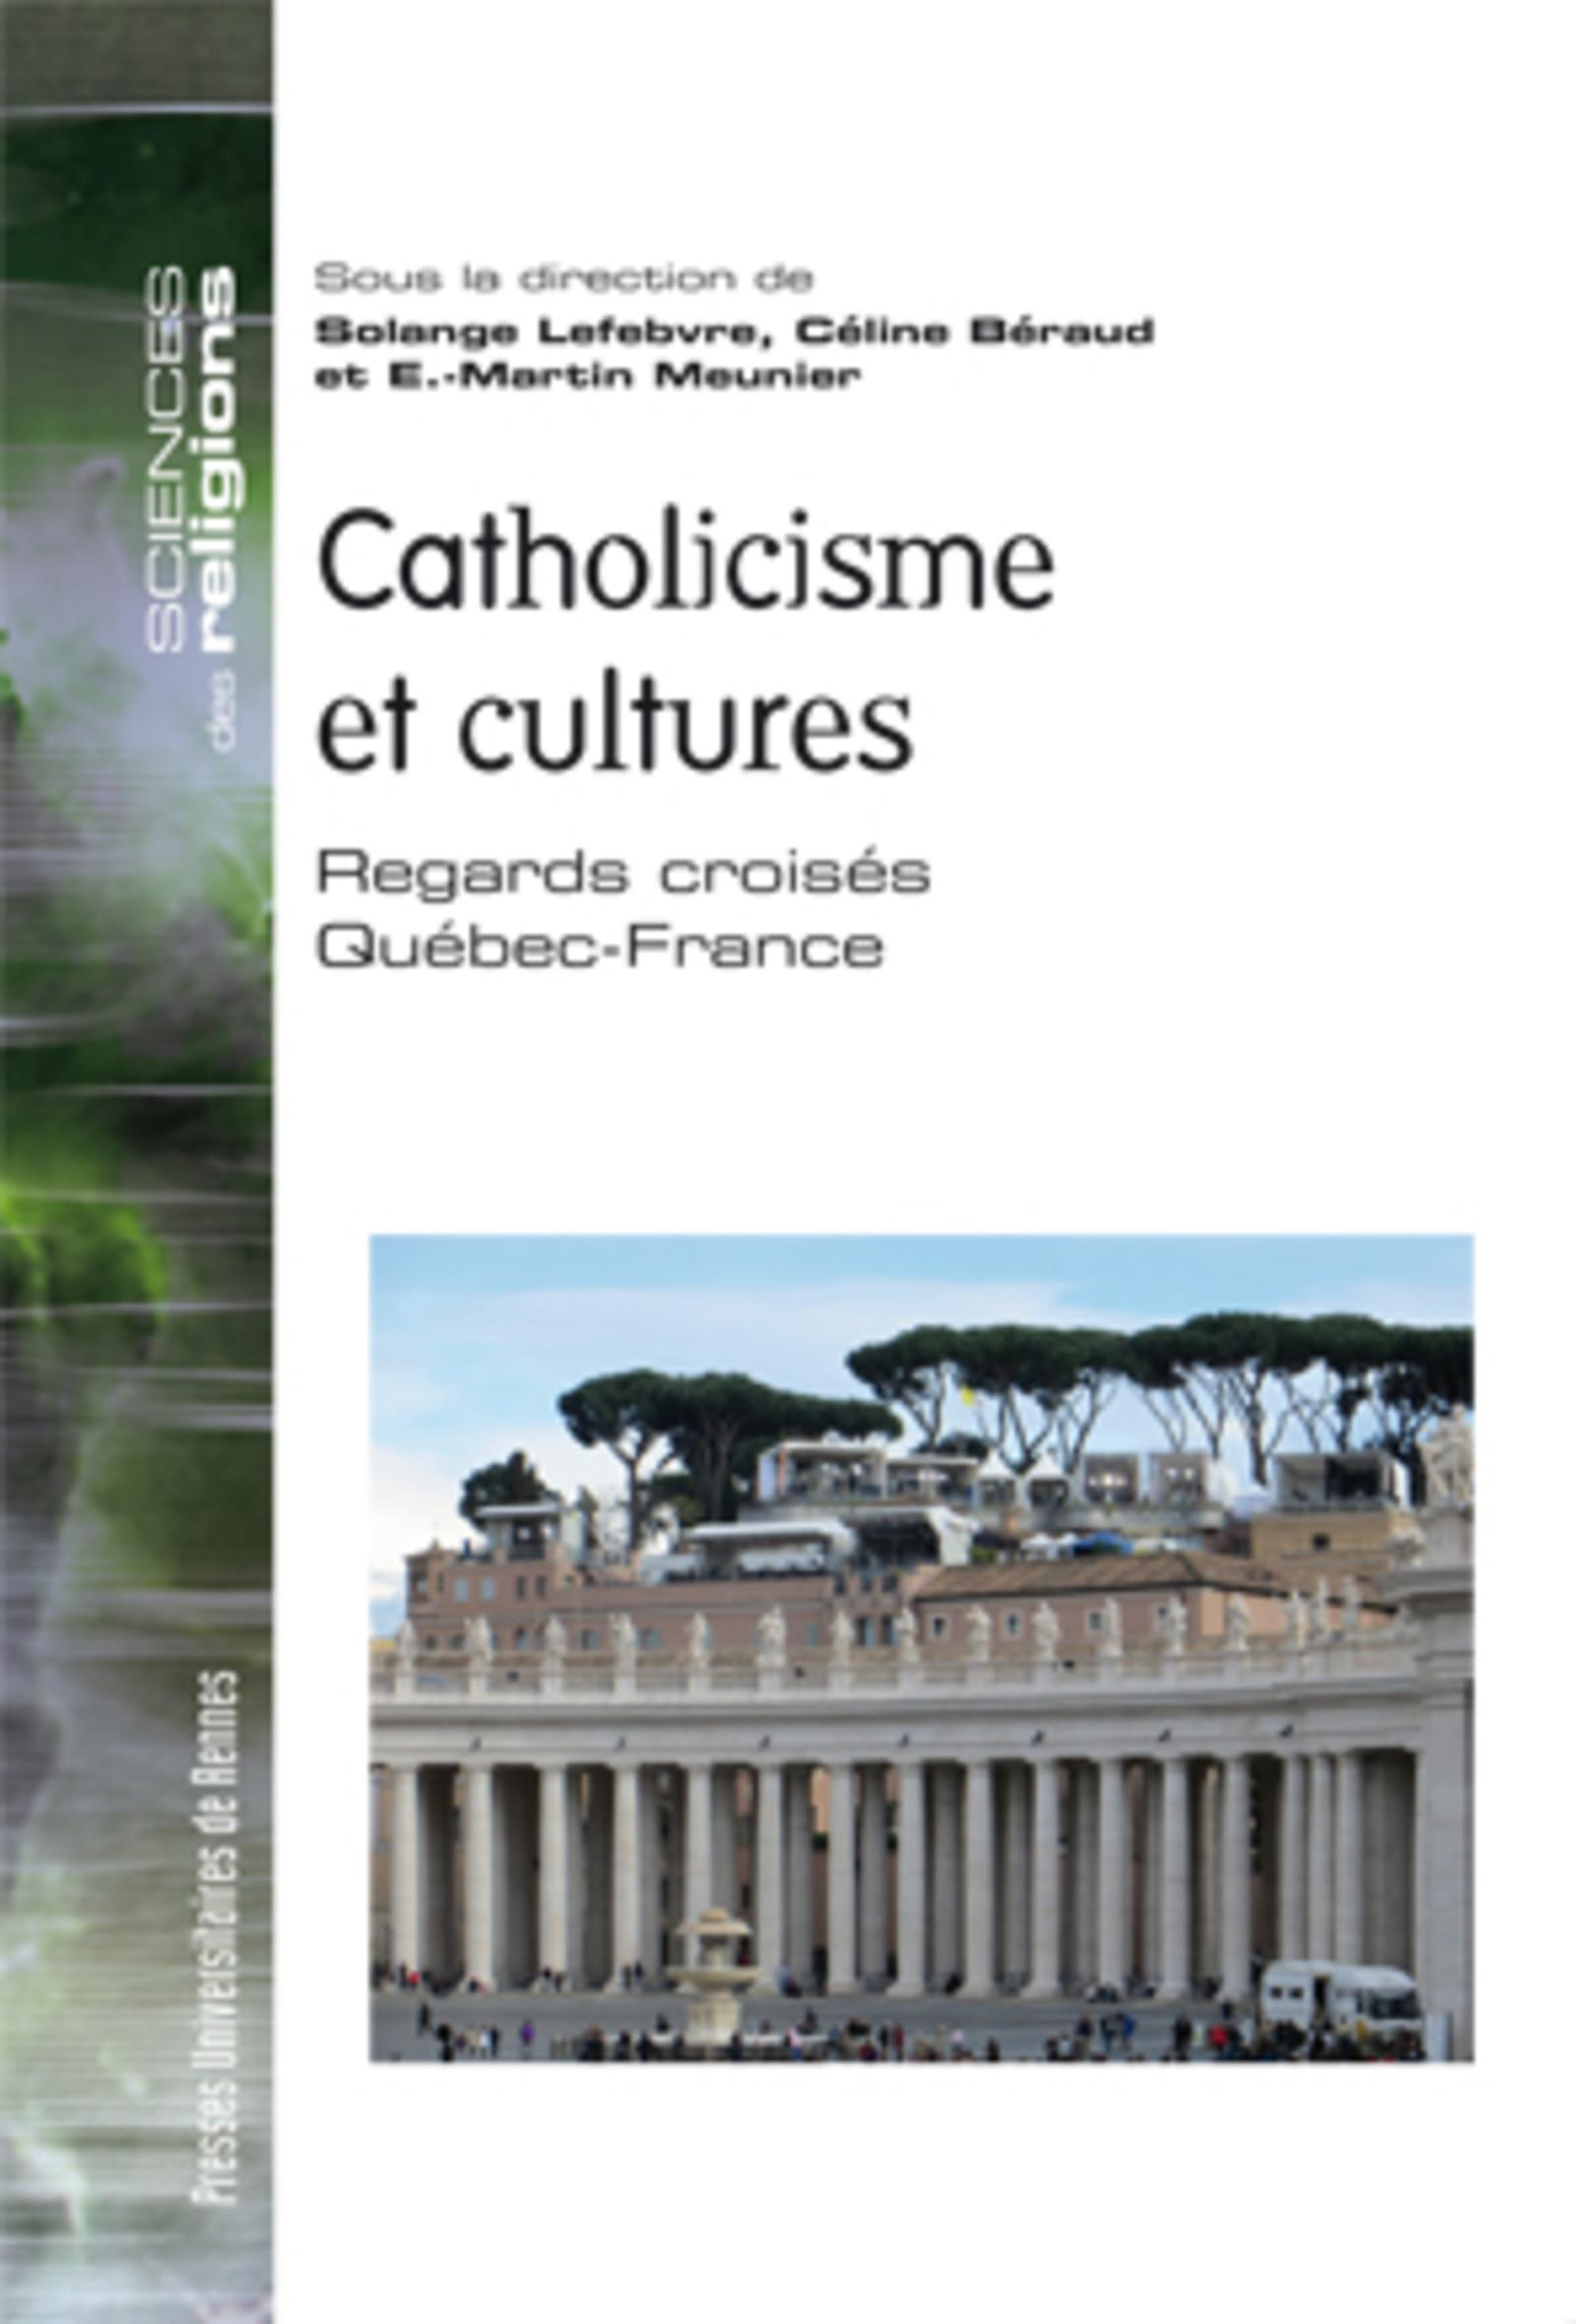 CATHOLICISME ET CULTURES REGARDS CROISES QUEBEC-FRANCE